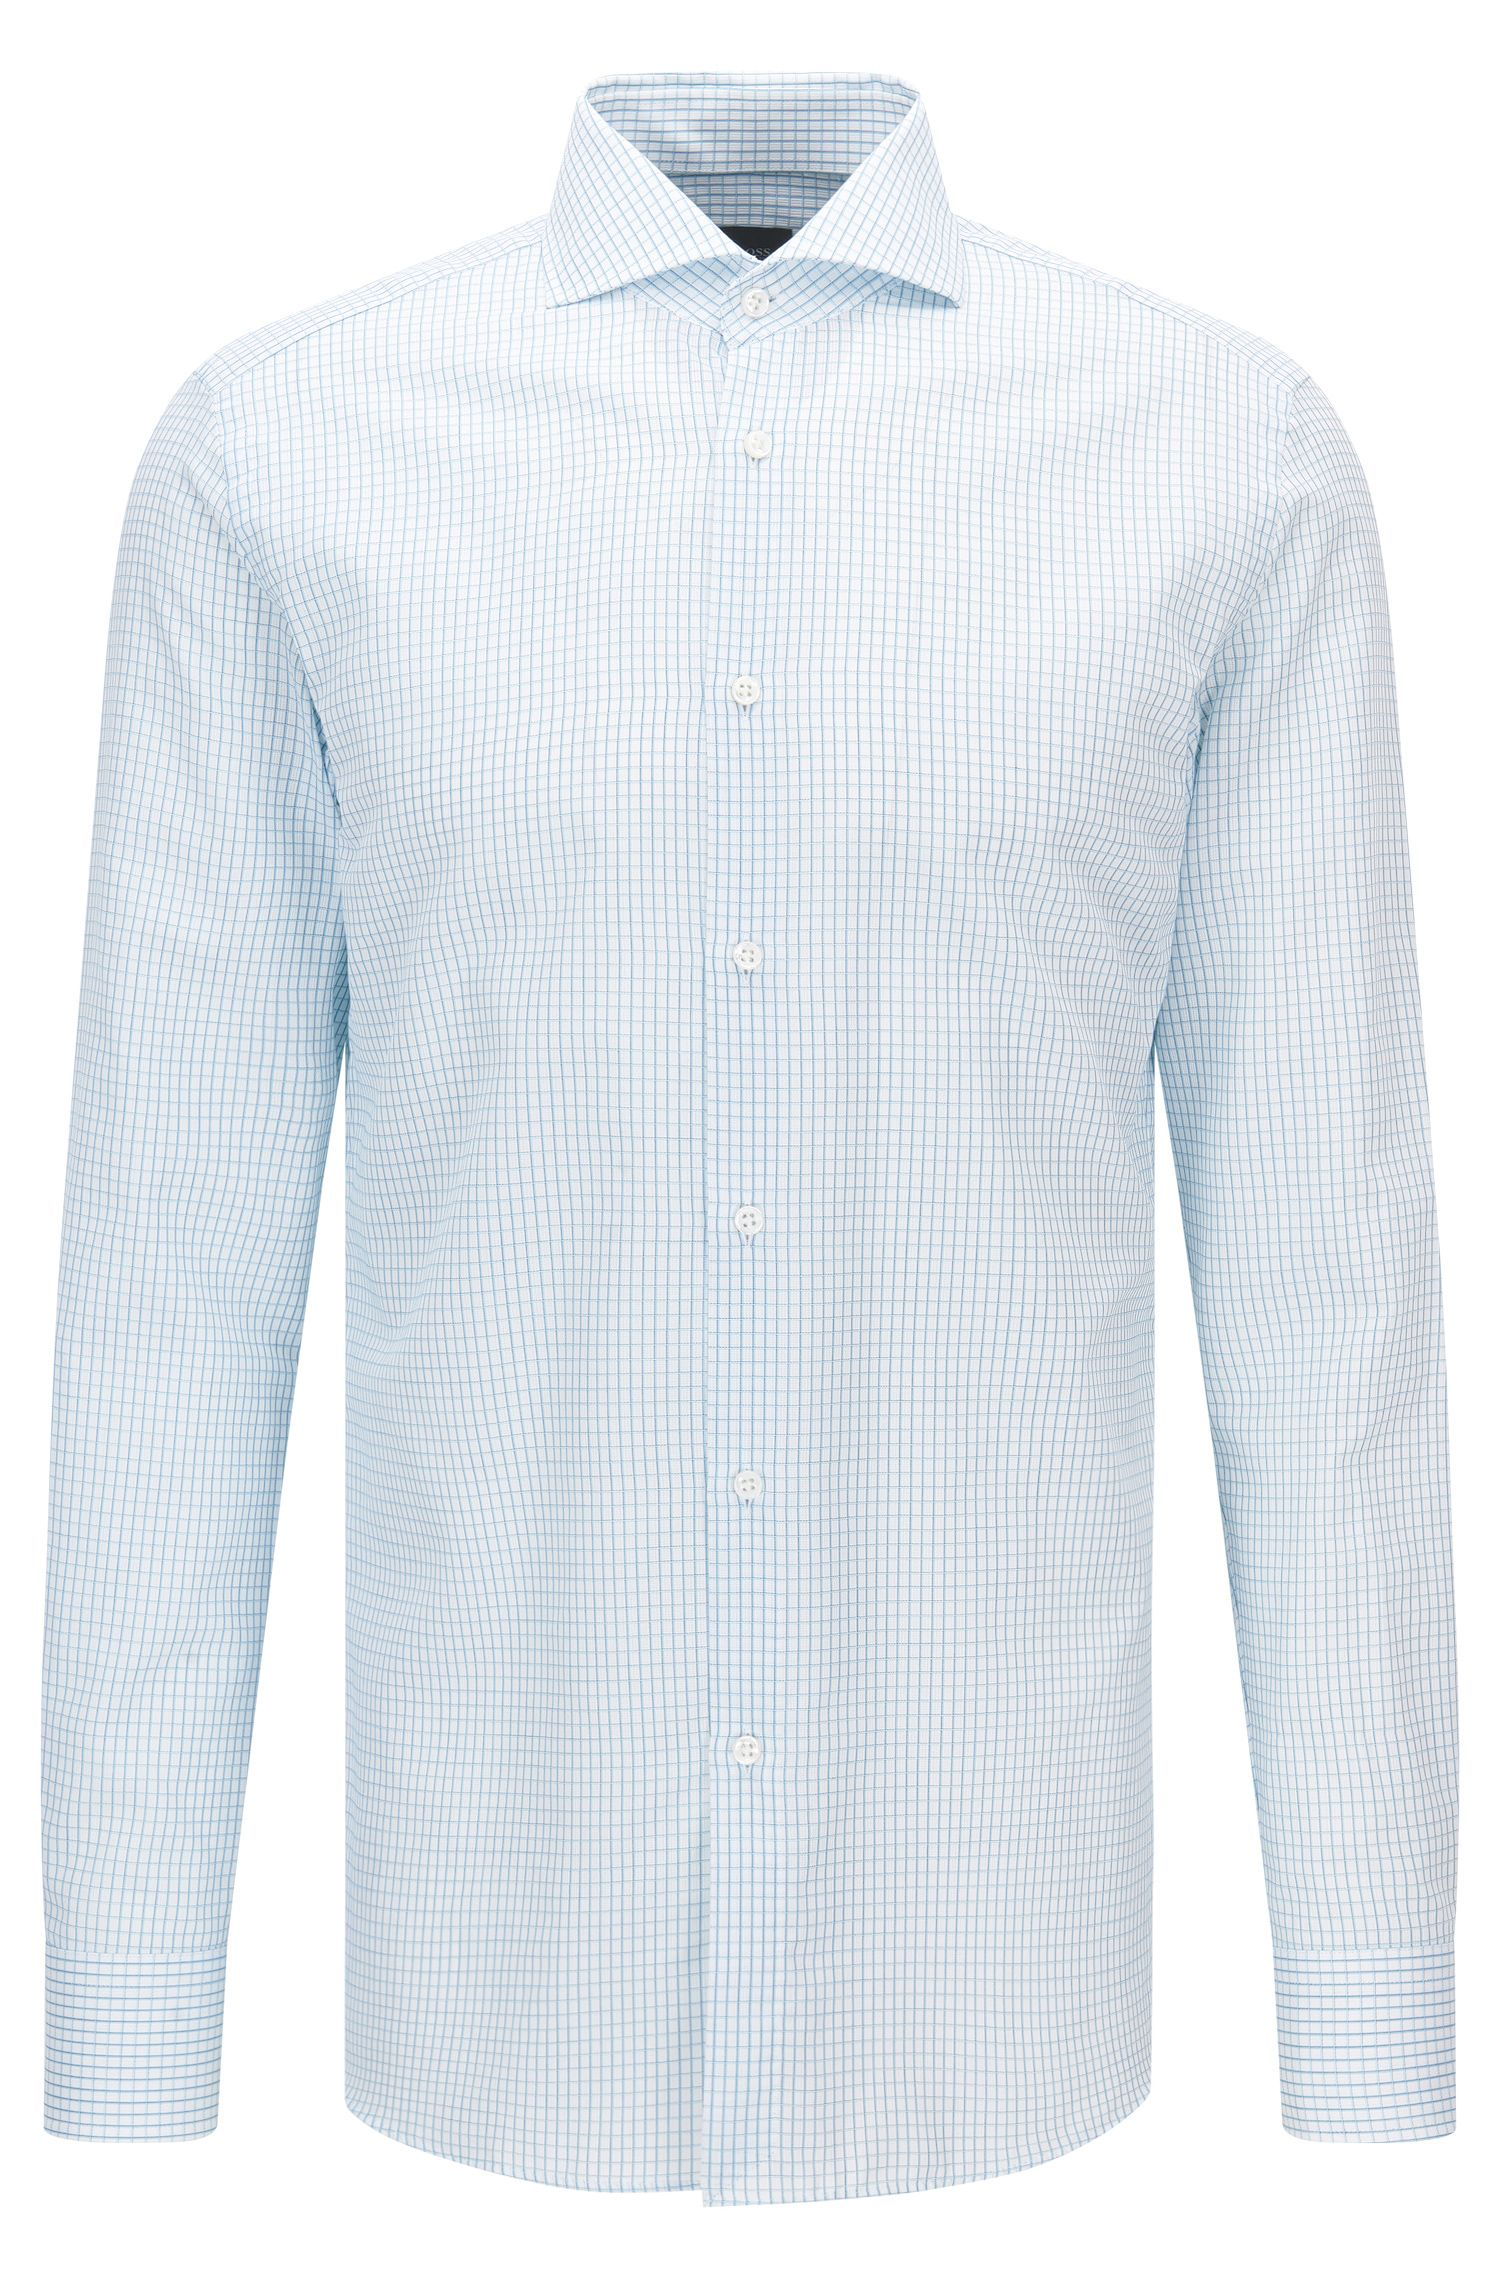 Check Italian Cotton Dress Shirt, Slim Fit | T-Christo